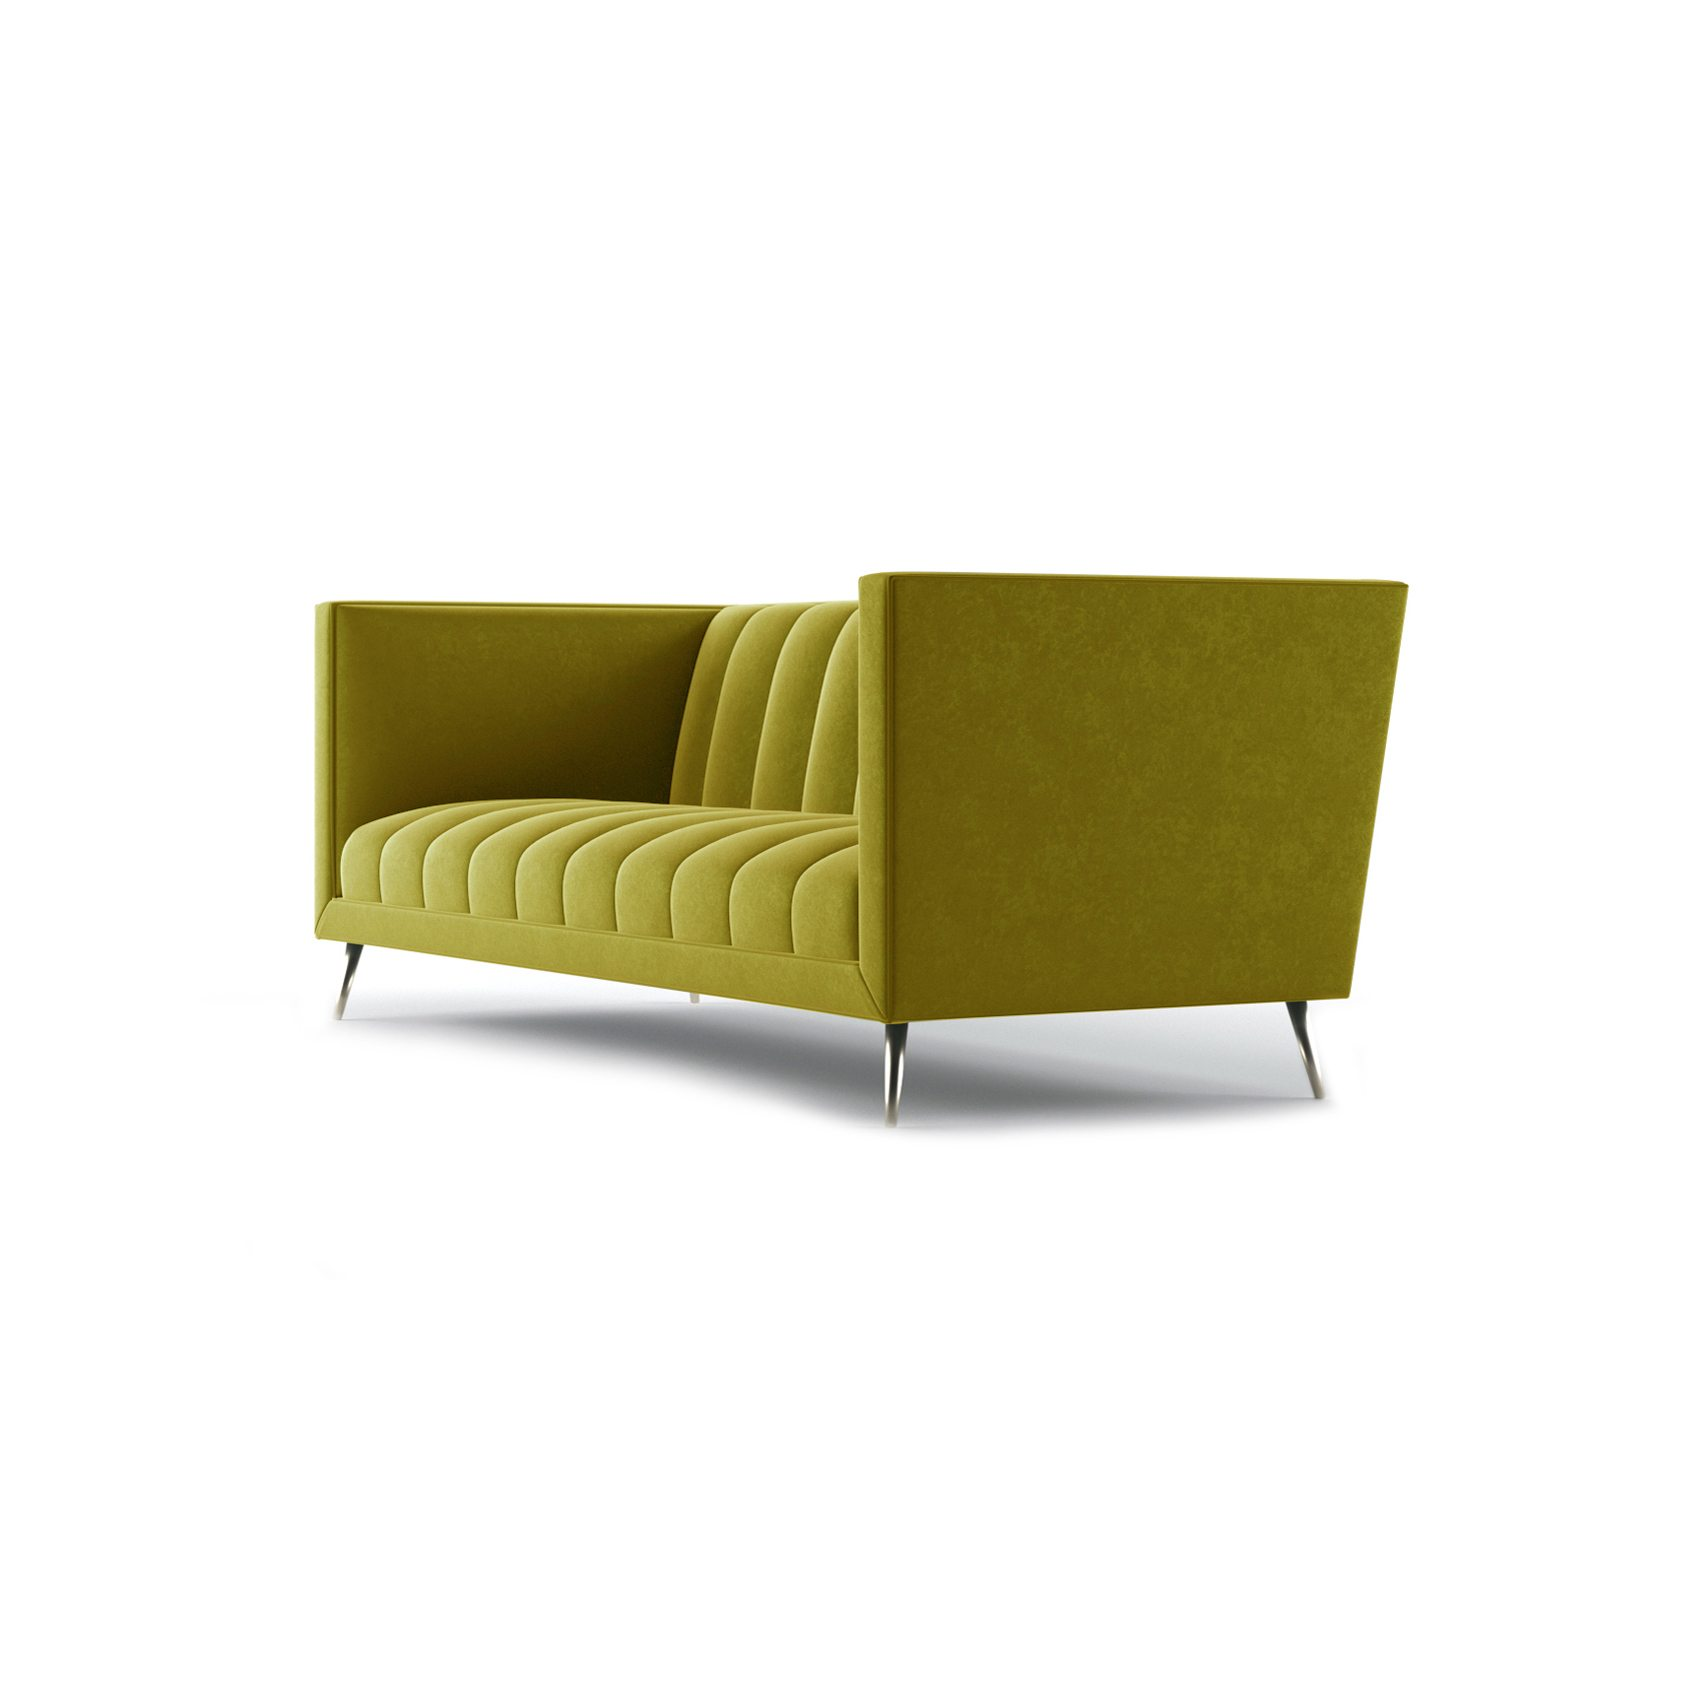 Connick Three and a Half Seater Sofa by Bonham & Bonham Gold 03